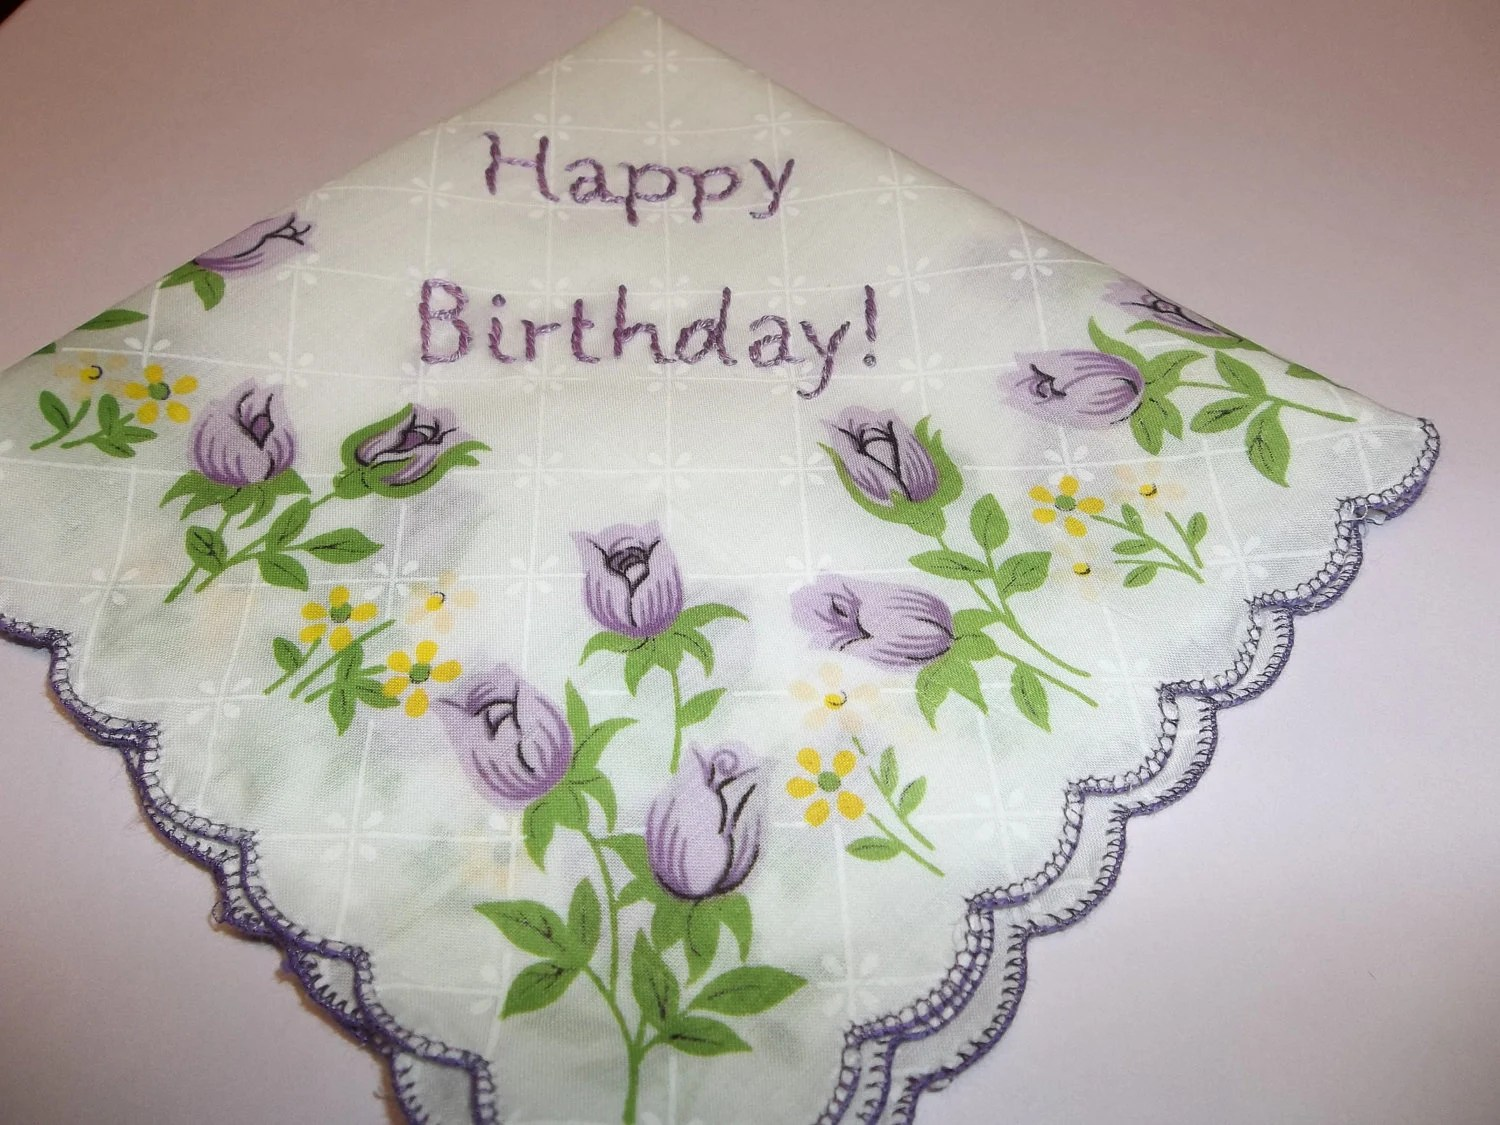 Happy Birthday Handkerchief Sentiment Hanky Hand Embroidery